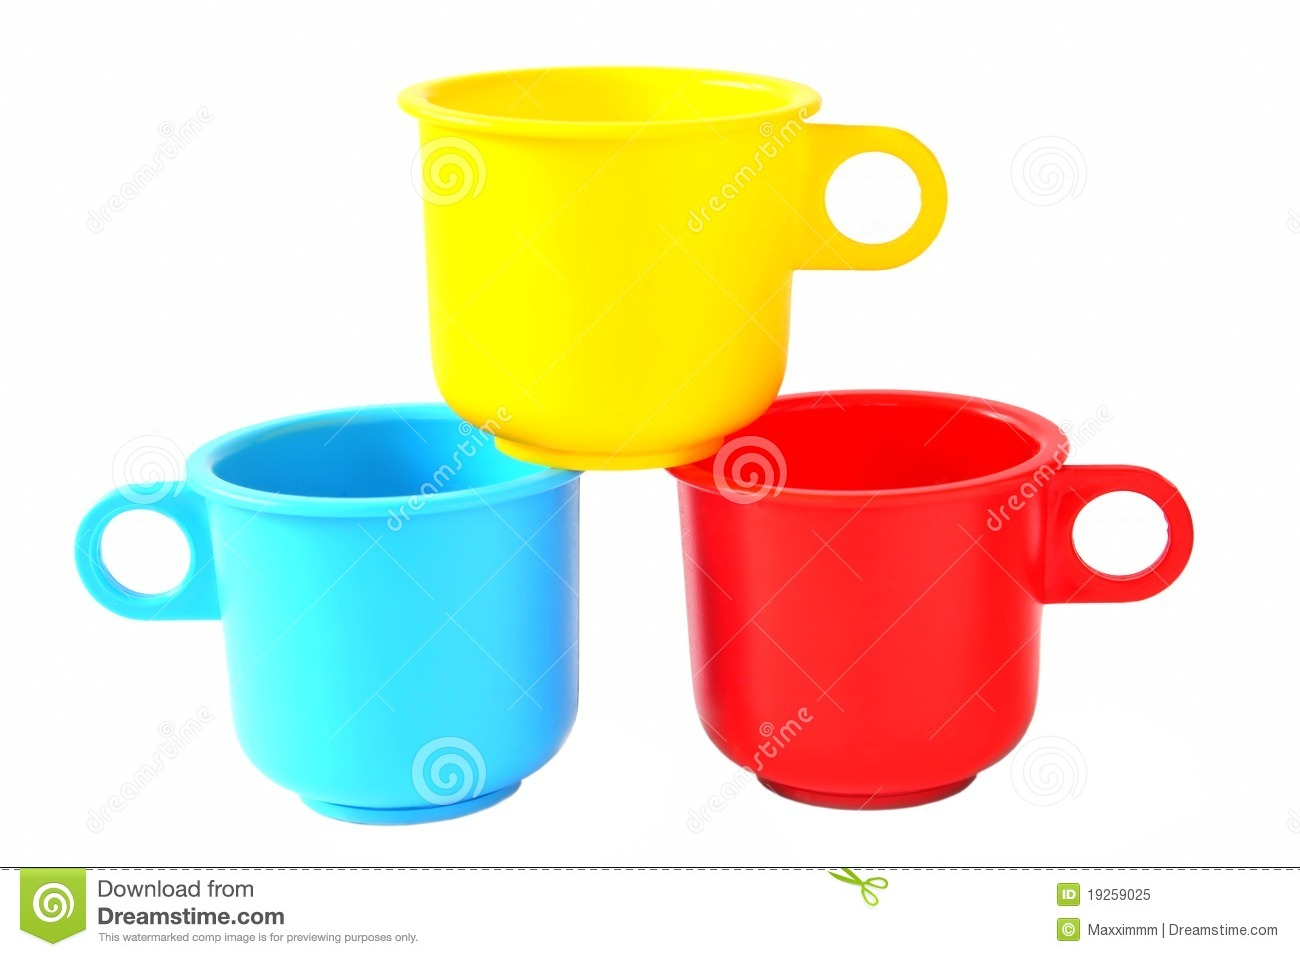 Toy Baby Cups 0 Jpg Royalty Free Stock Photo Image